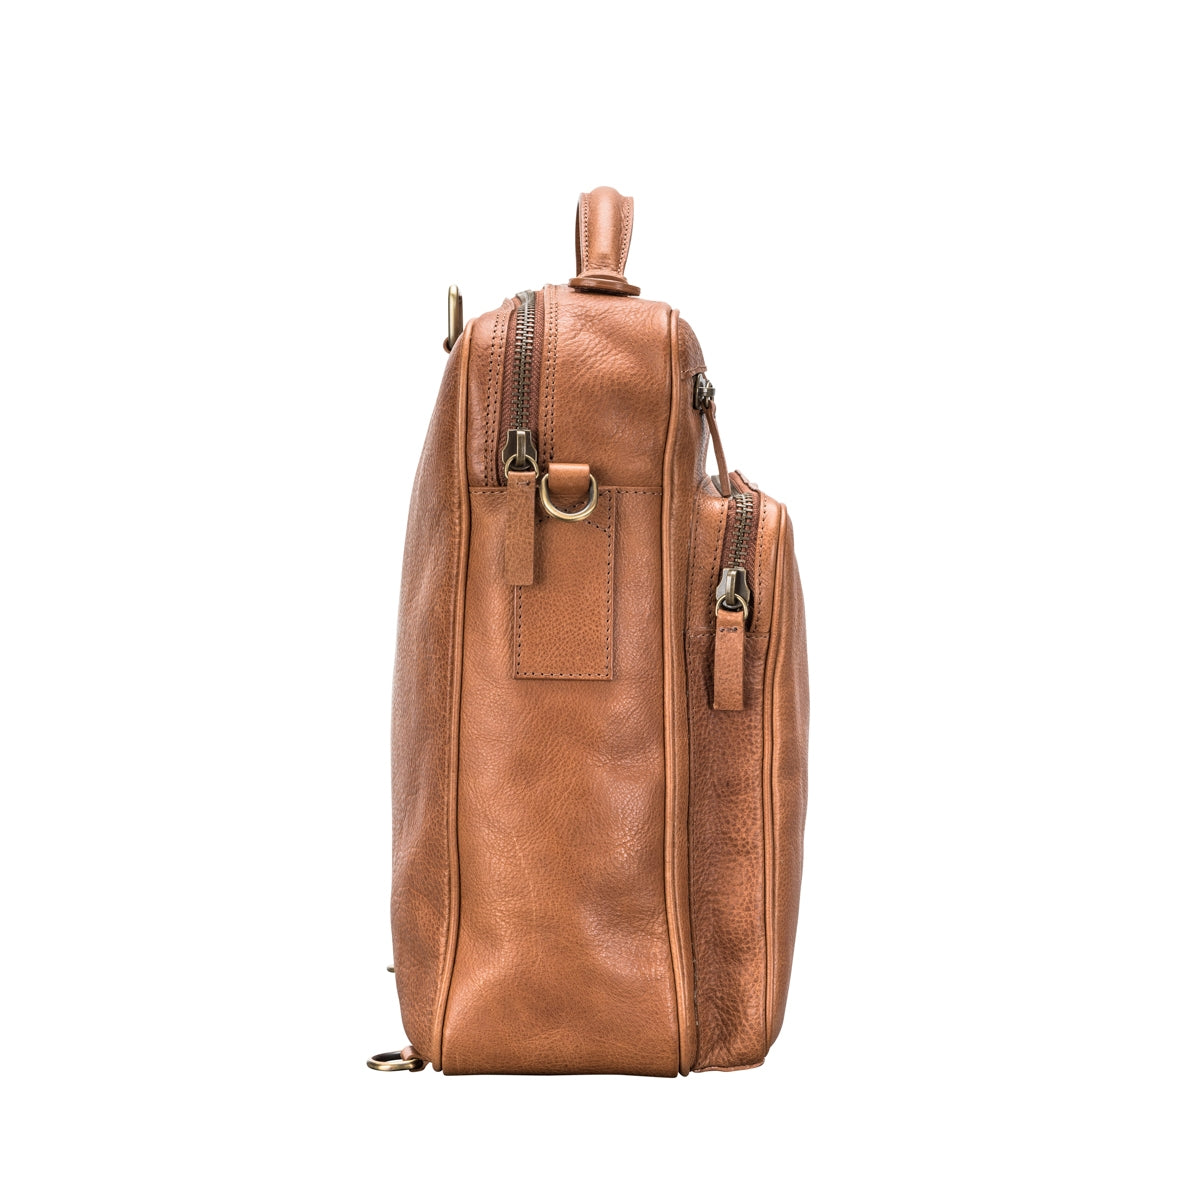 Image 3 of the 'SantinoL' Large Camel Leather Convertible Backpack Crossbody Bag For Men